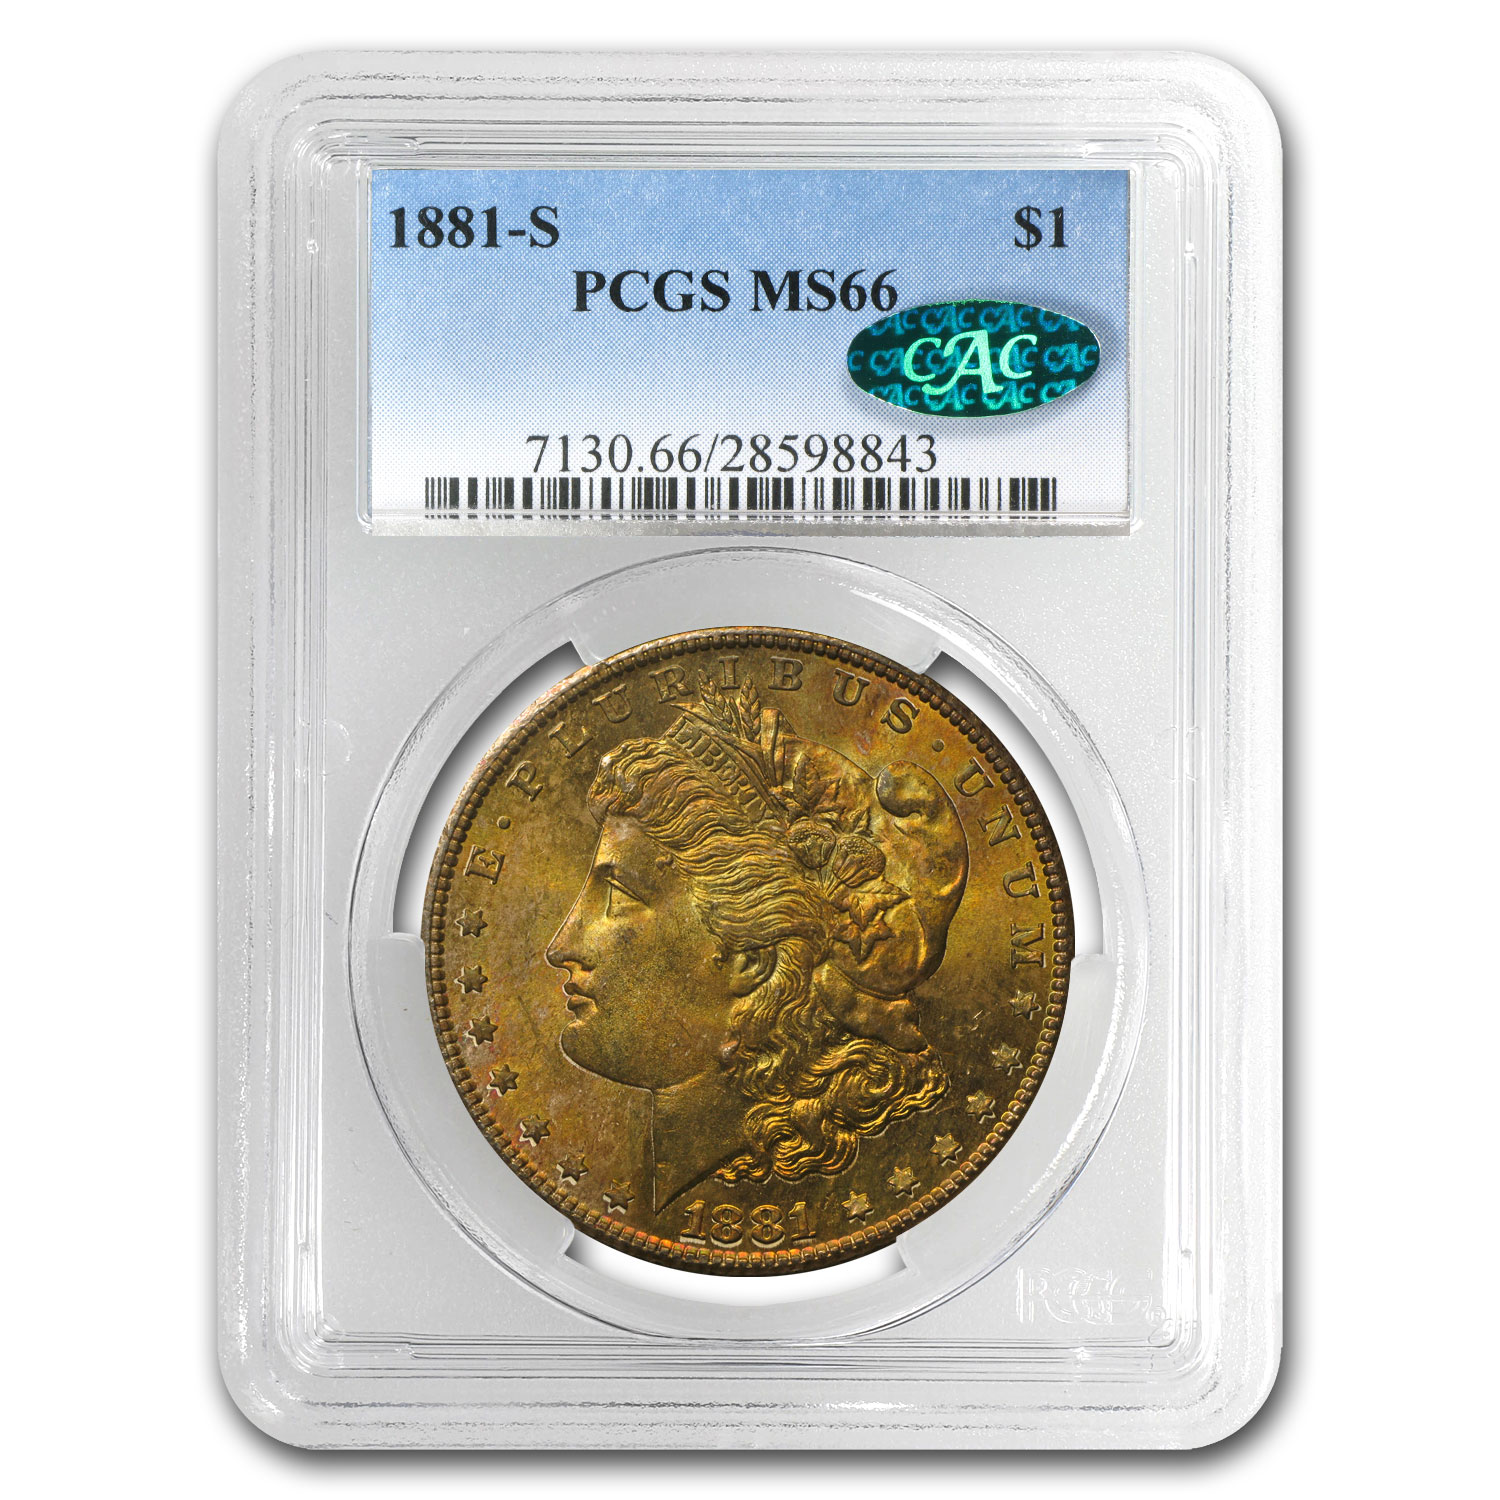 1881-S Morgan Dollar - MS-66 PCGS Beautifully Toned - CAC